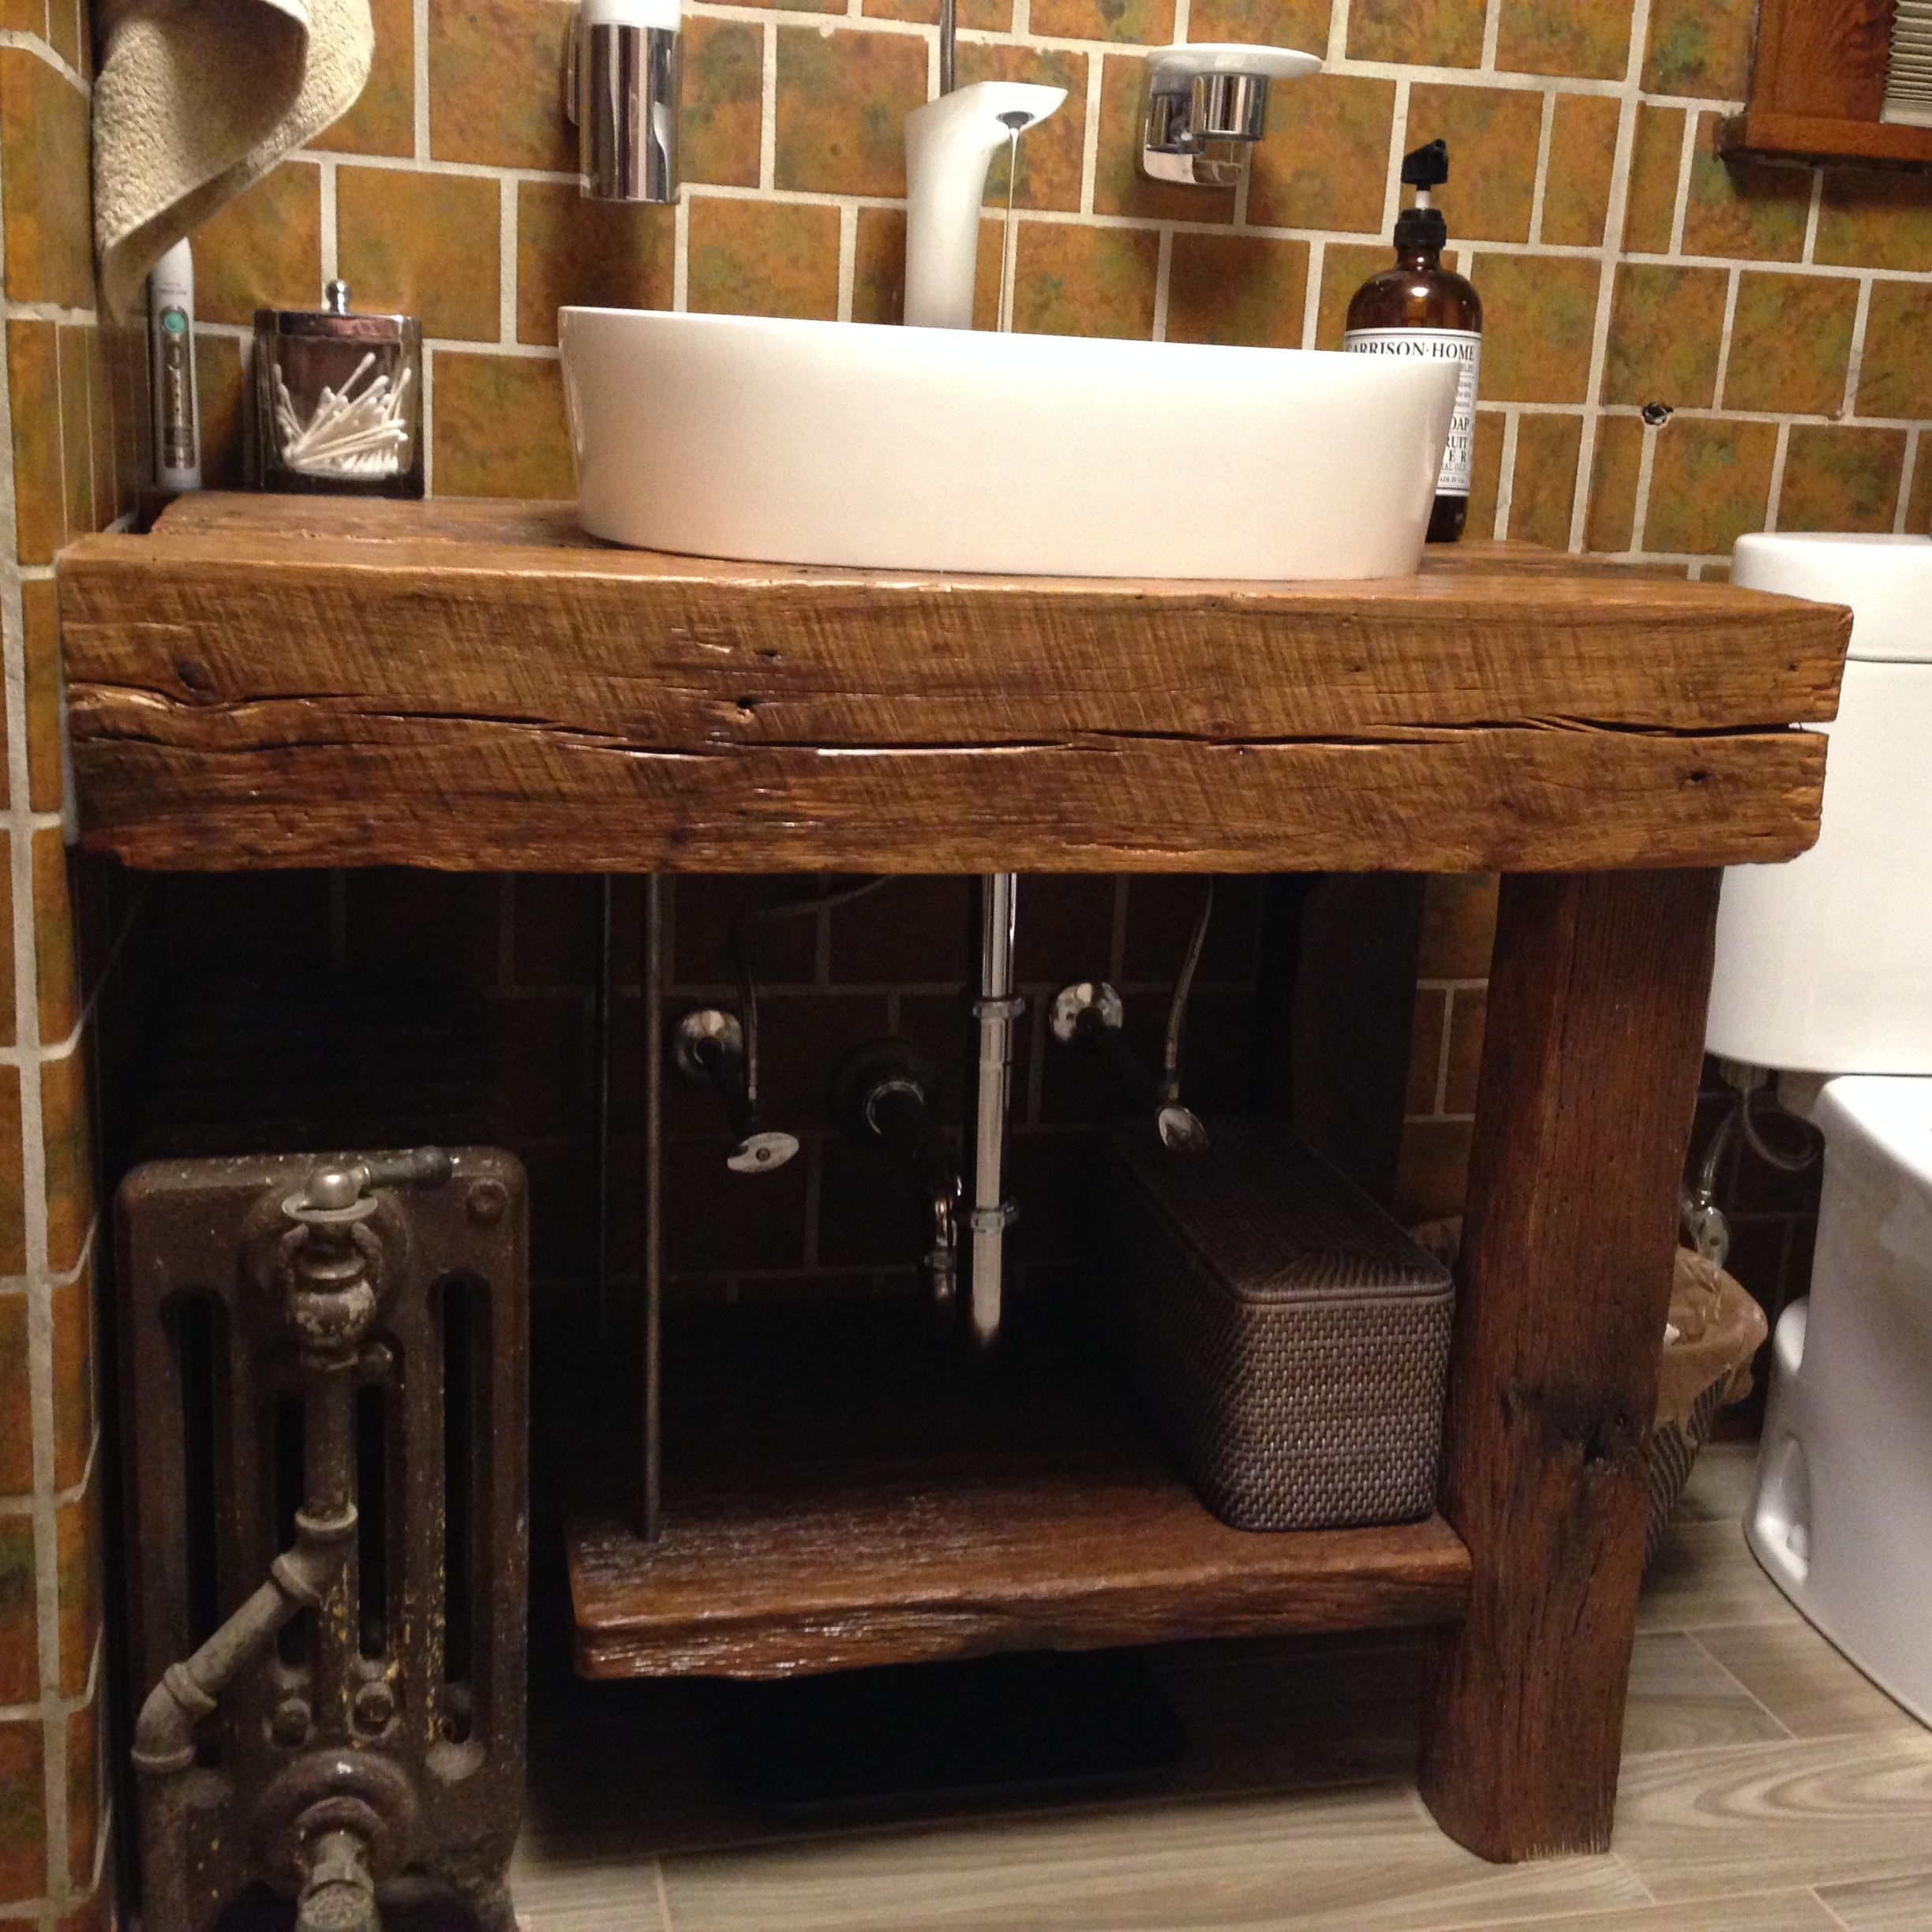 Custom Bathroom Vanity Units